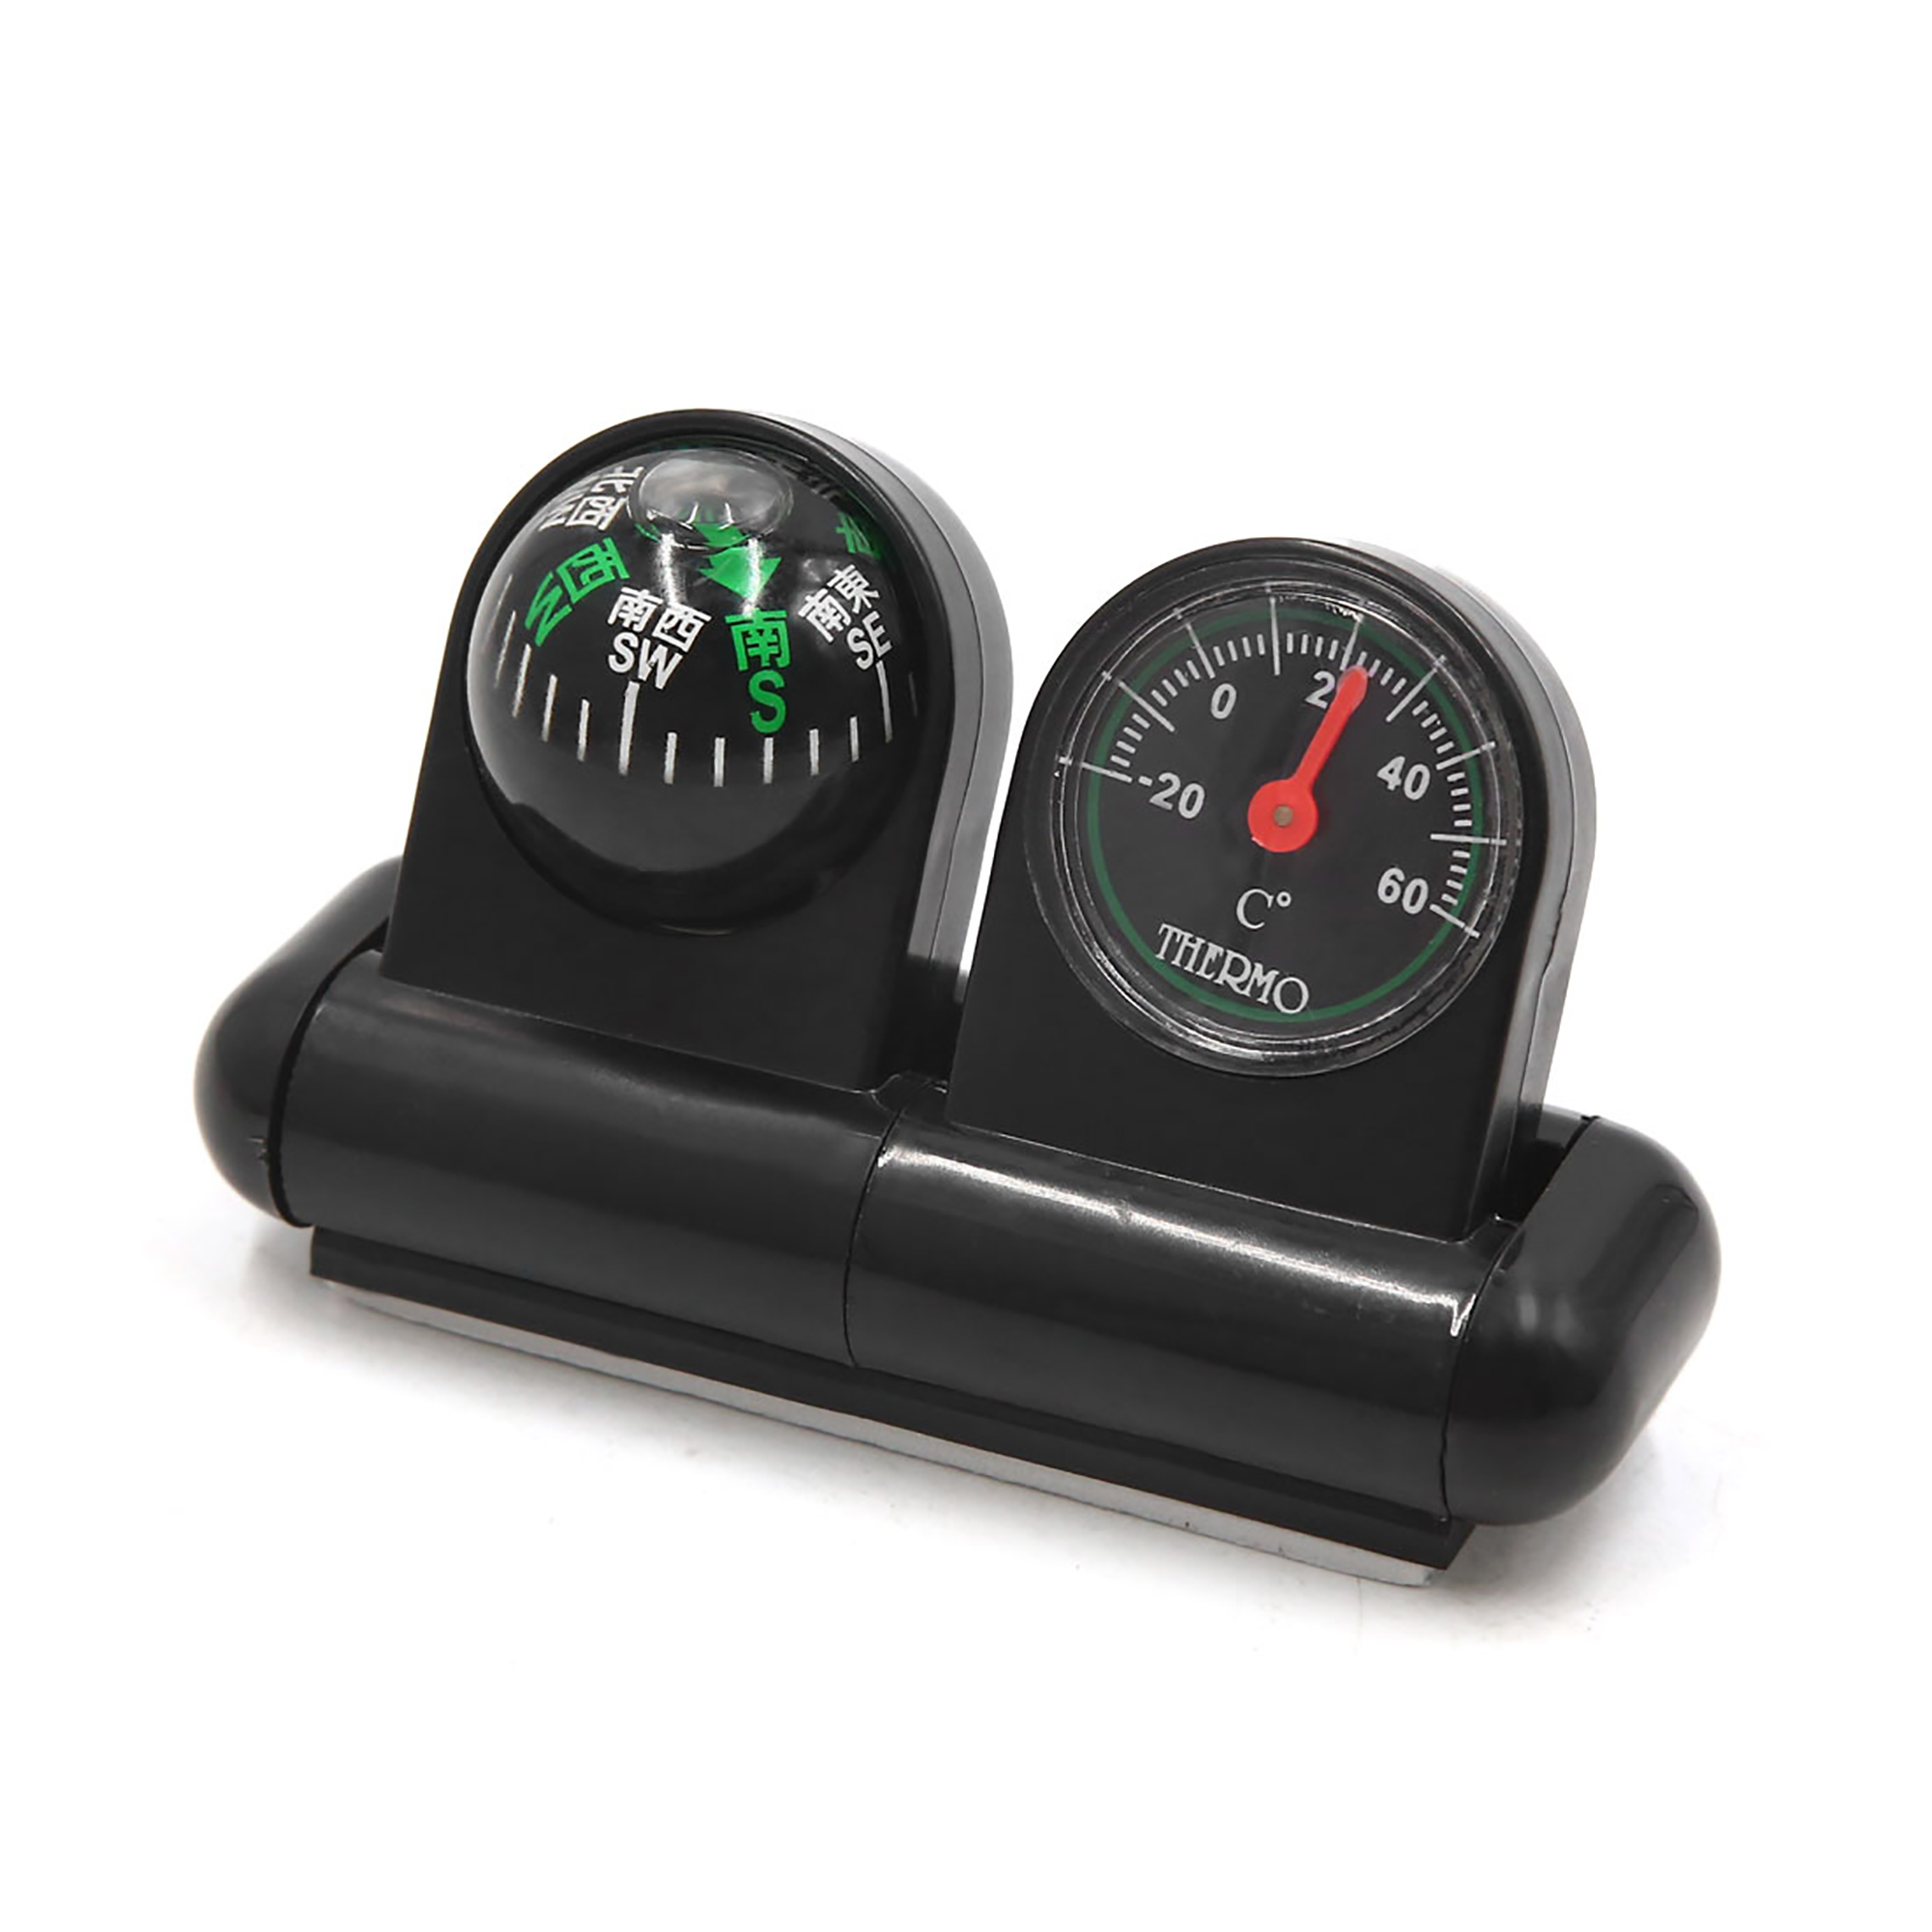 Black Plastic Compass Thermometer Ball Dashboard Navigation for Car Vehicle